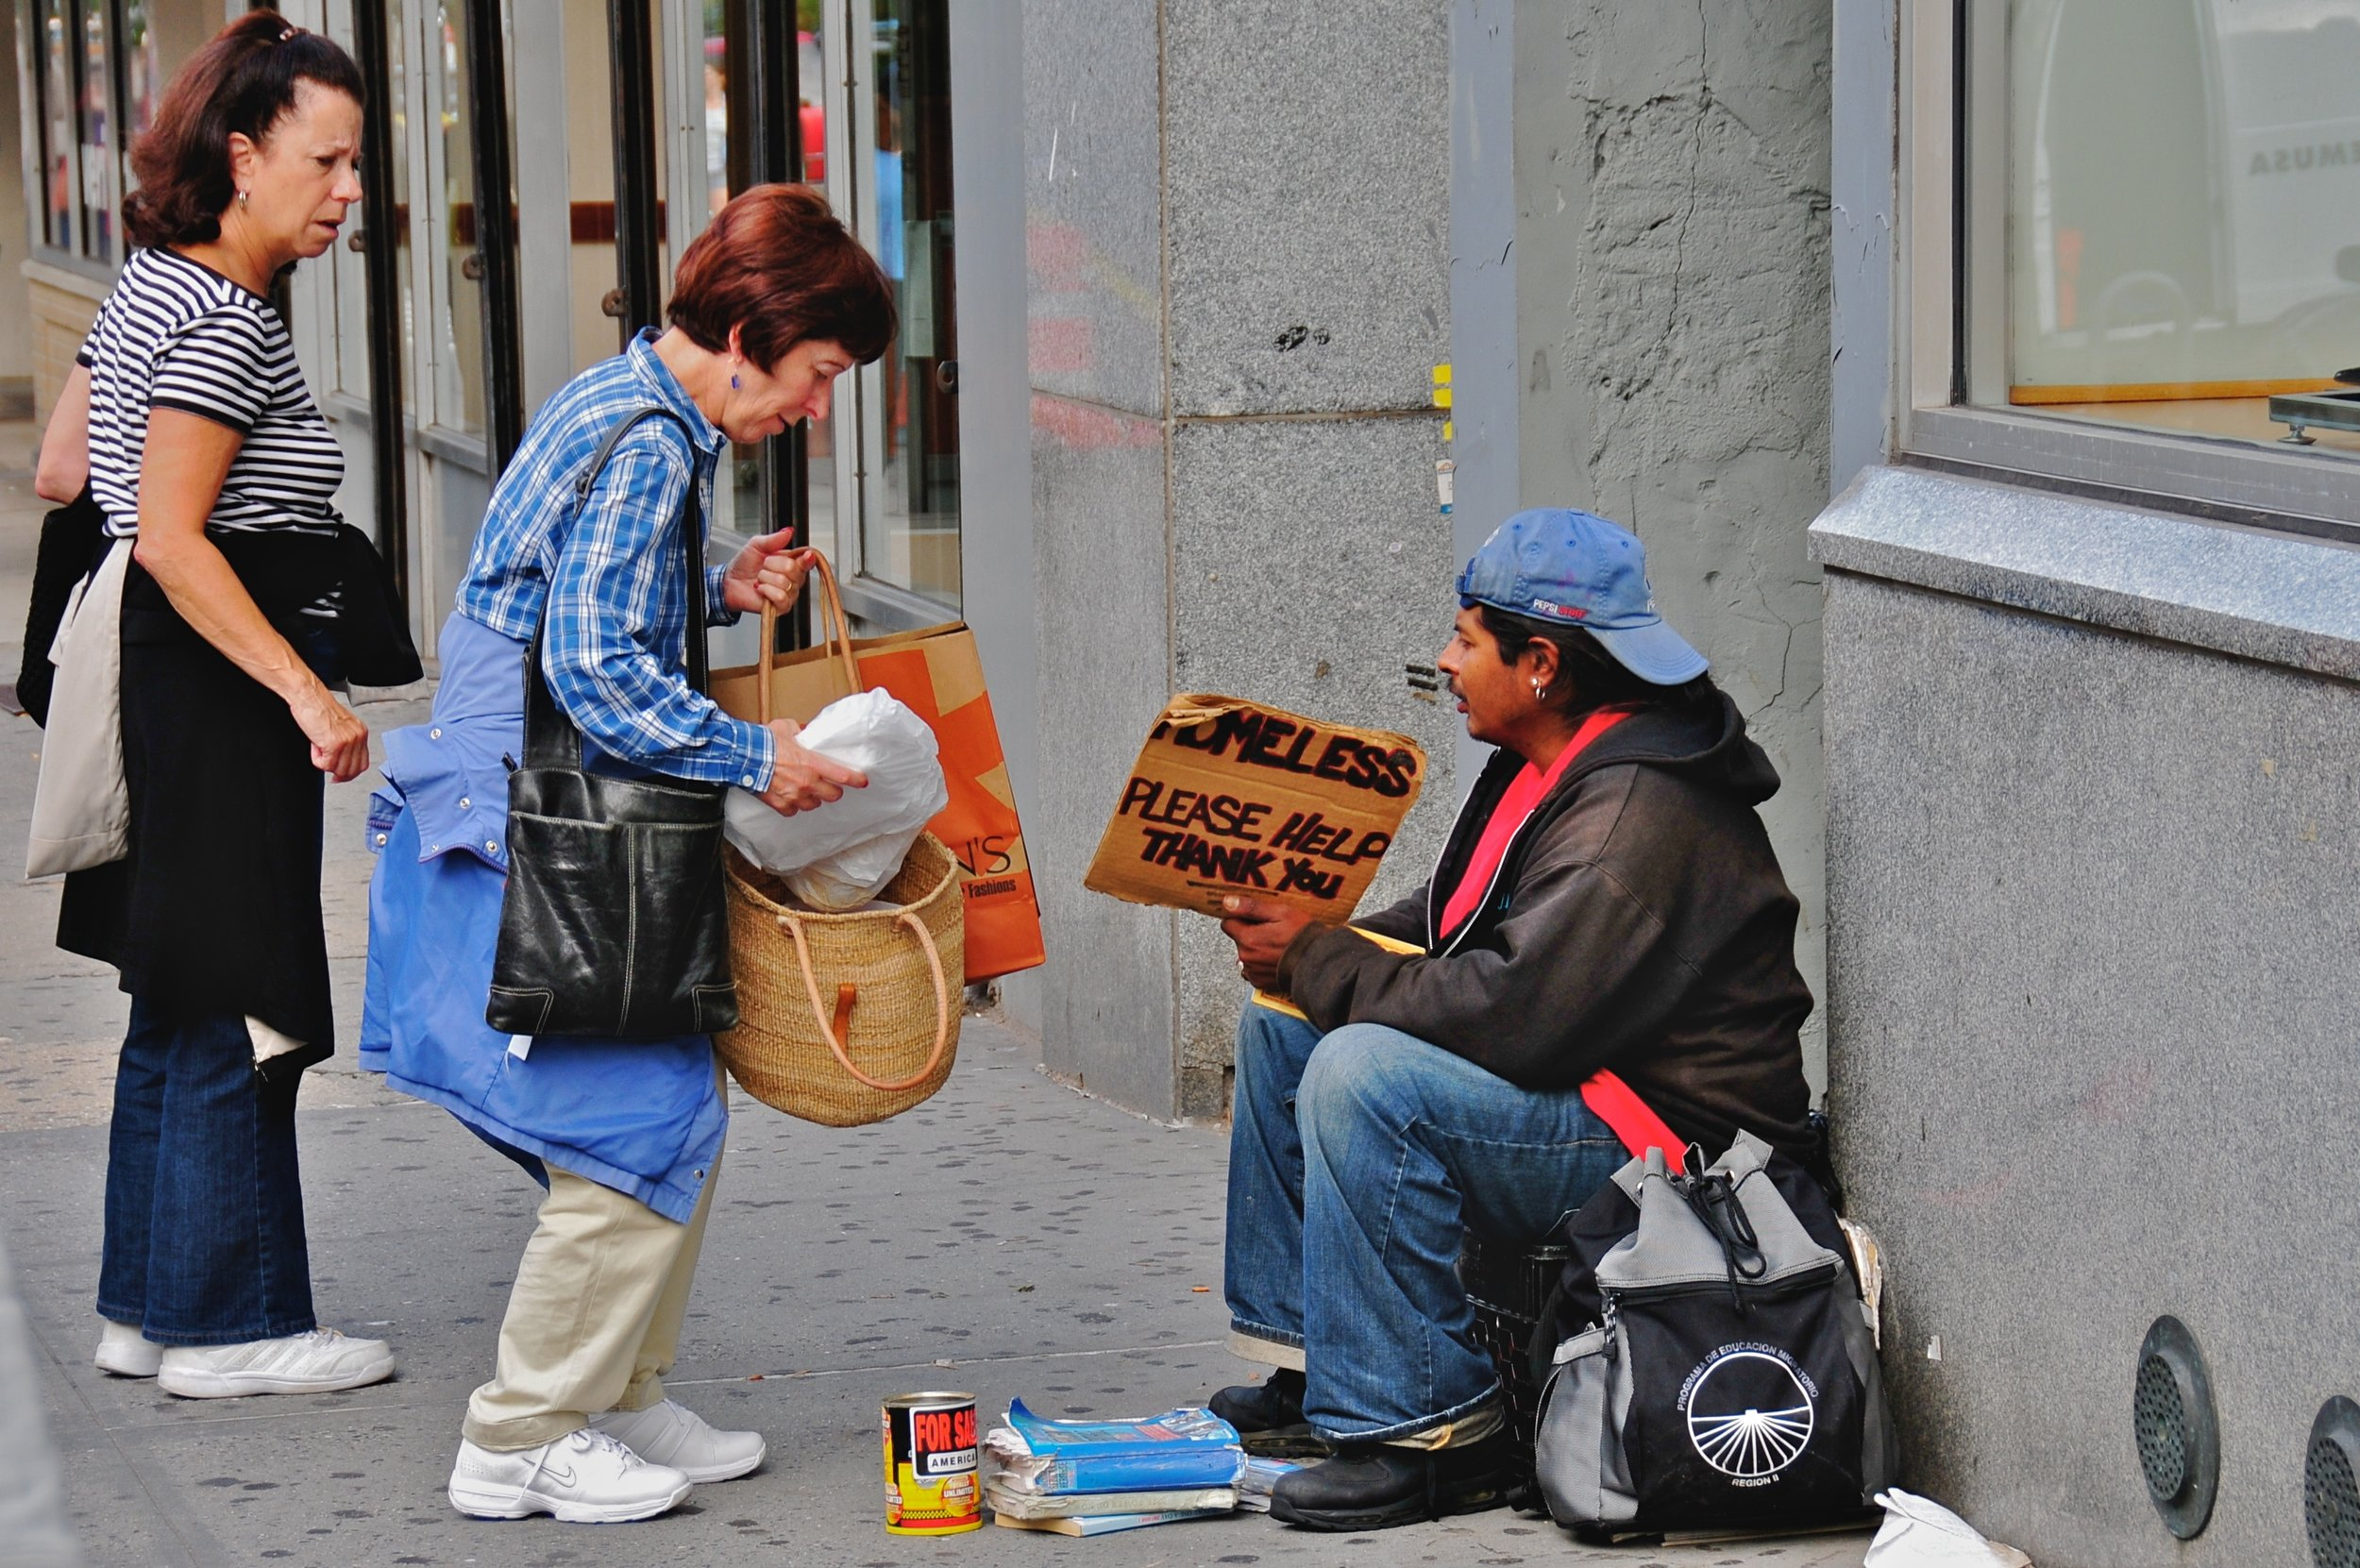 By Ed Yourdon from New York City, USA - Helping the homeless  Uploaded by Gary Dee, CC BY-SA 2.0